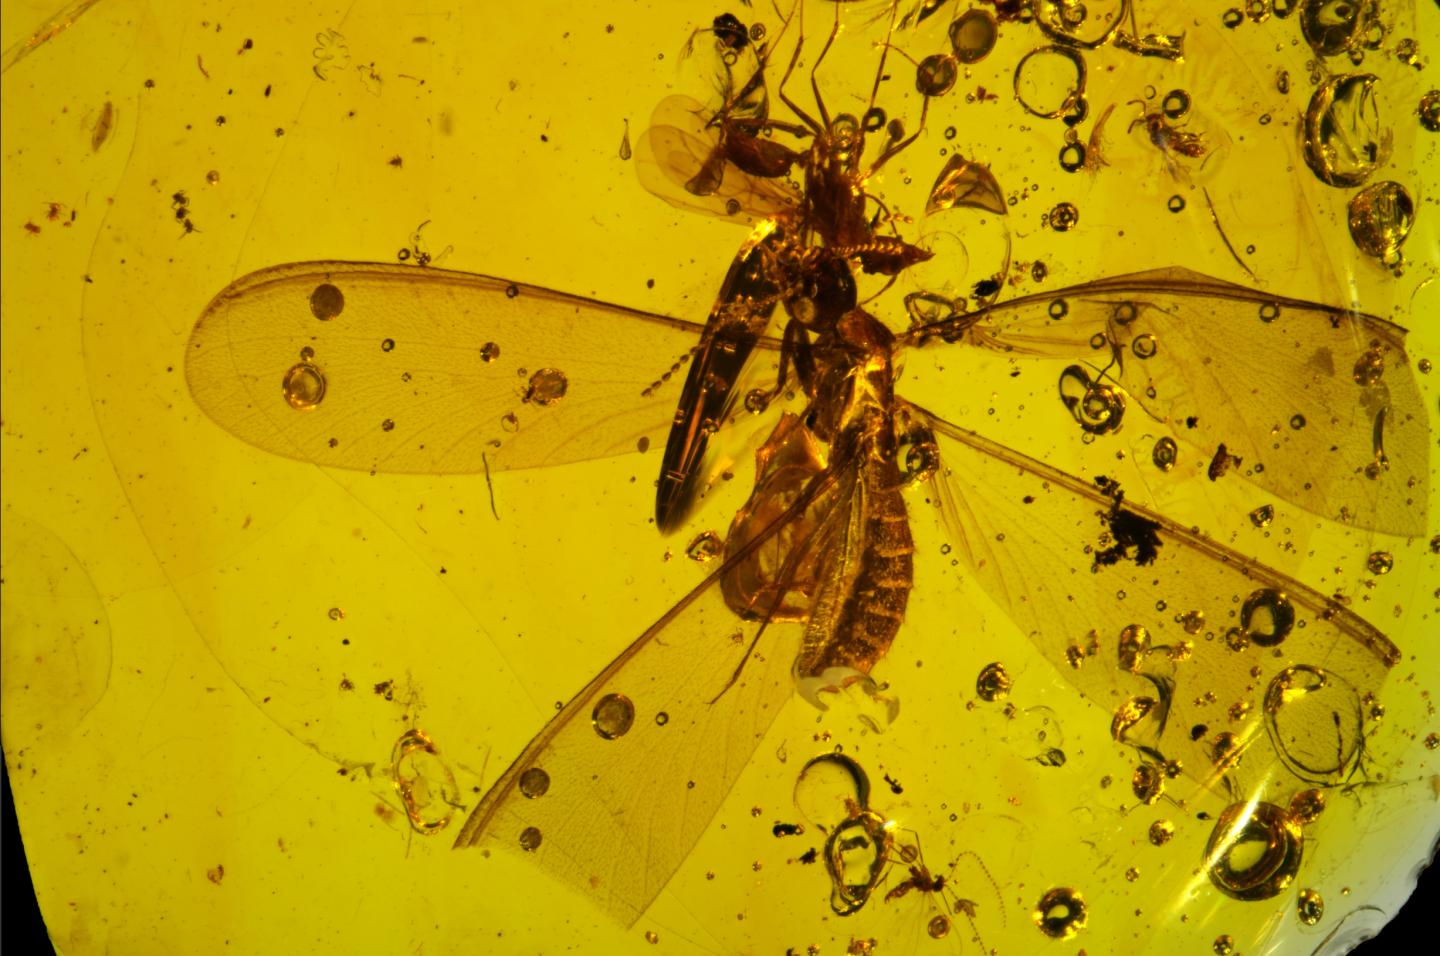 16-Million-Year-Old Fossil Shows Springtails Hitchhiking on Winged Termite